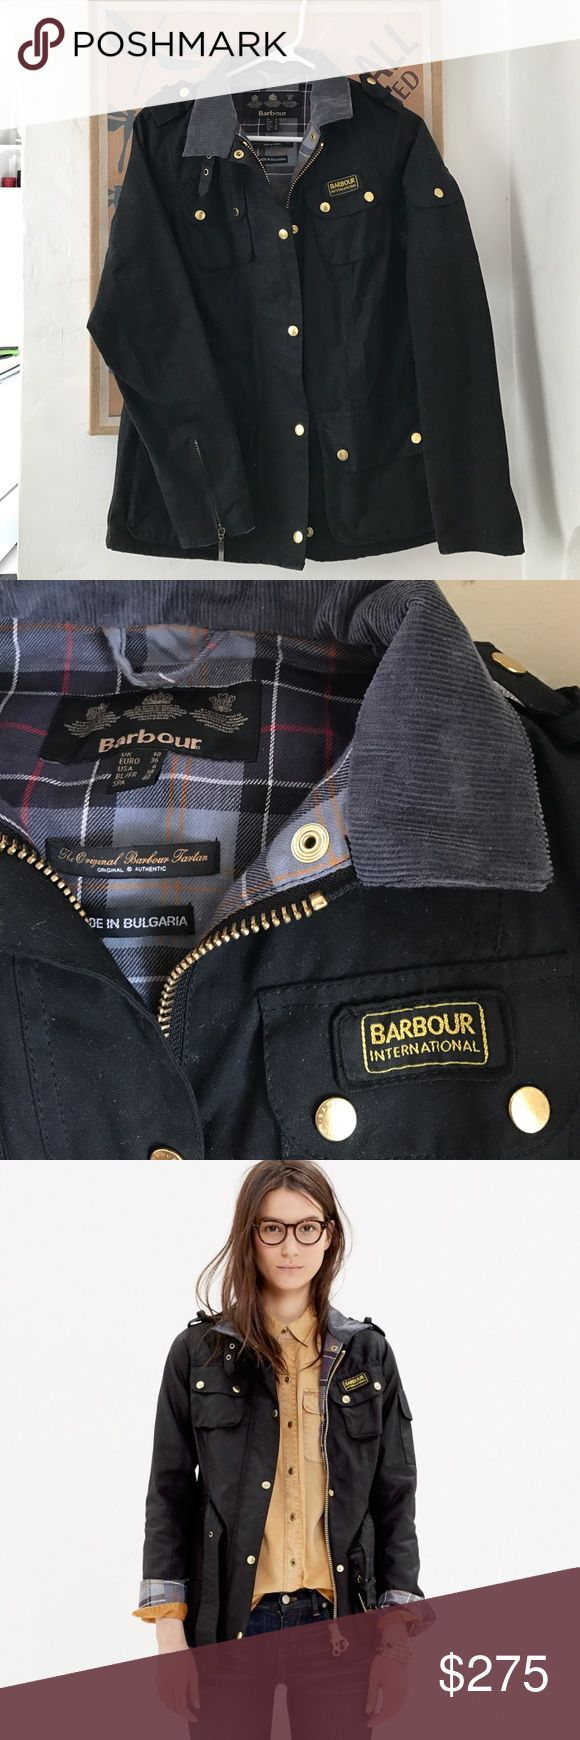 Barbour coat New B.INTL Ladies international wax jacket. I love this jacket so much, but never wear it. Barbour Jackets & Coats